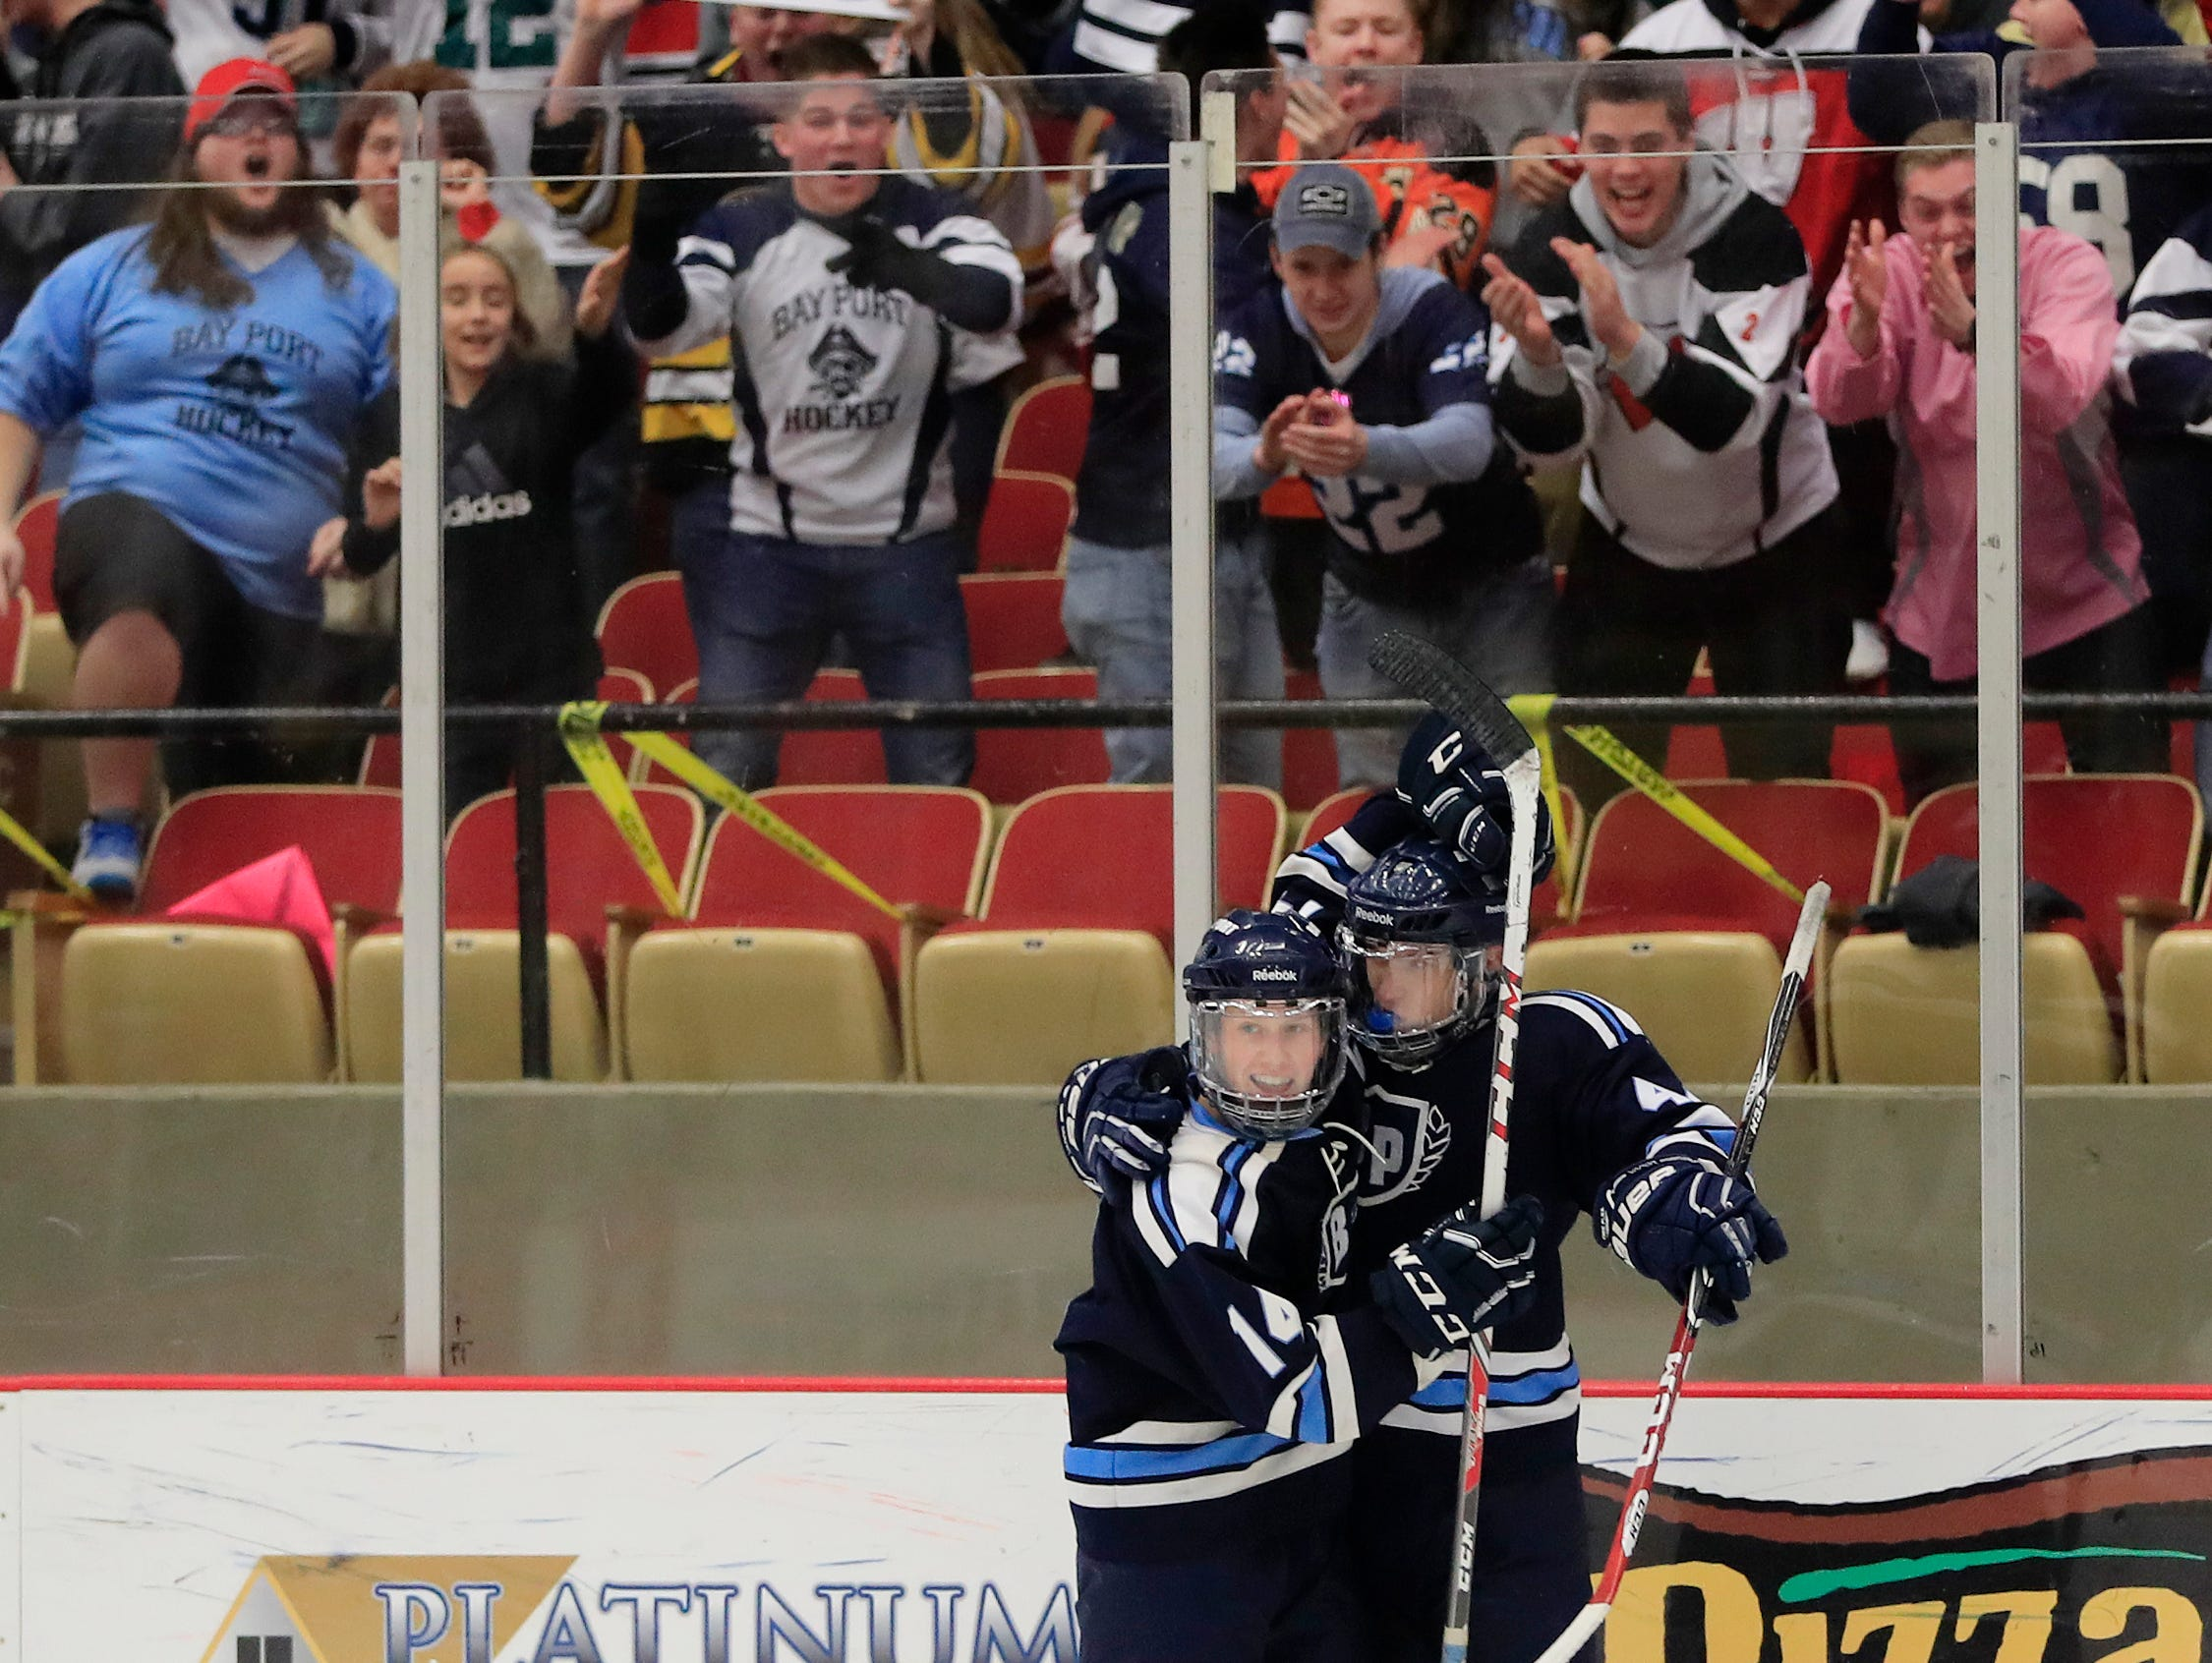 Bay Port Pirates defenseman Joe Cavil (14) and forward Max Moore (44) after Moore scored a goal against the Sun Prairie Cardinals in a quarterfinal match at the 2017 State Hockey Tournament at Veterans Memorial Coliseum on Thursday, March 2, 2017, in Madison, Wis. Sun Prairie won the match, 3-2. Adam Wesley/USA TODAY NETWORK-Wisconsin